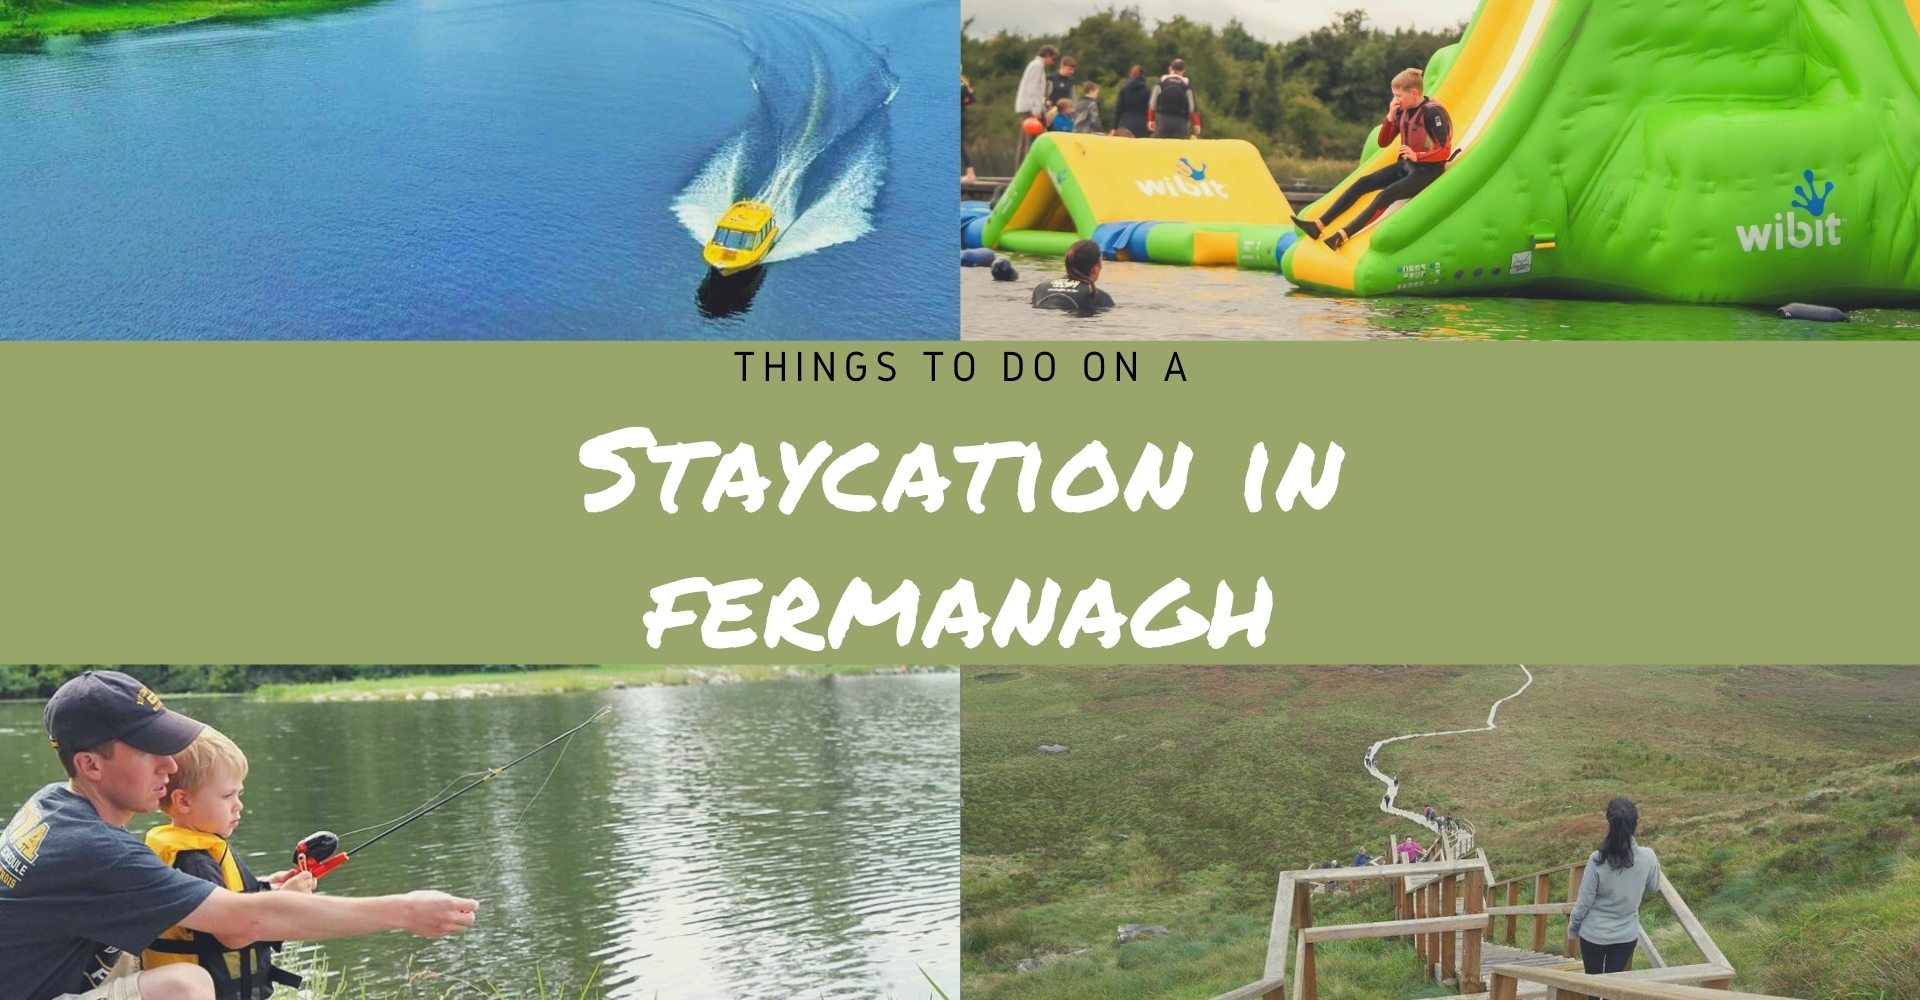 Things to do on a Staycation in Fermanagh